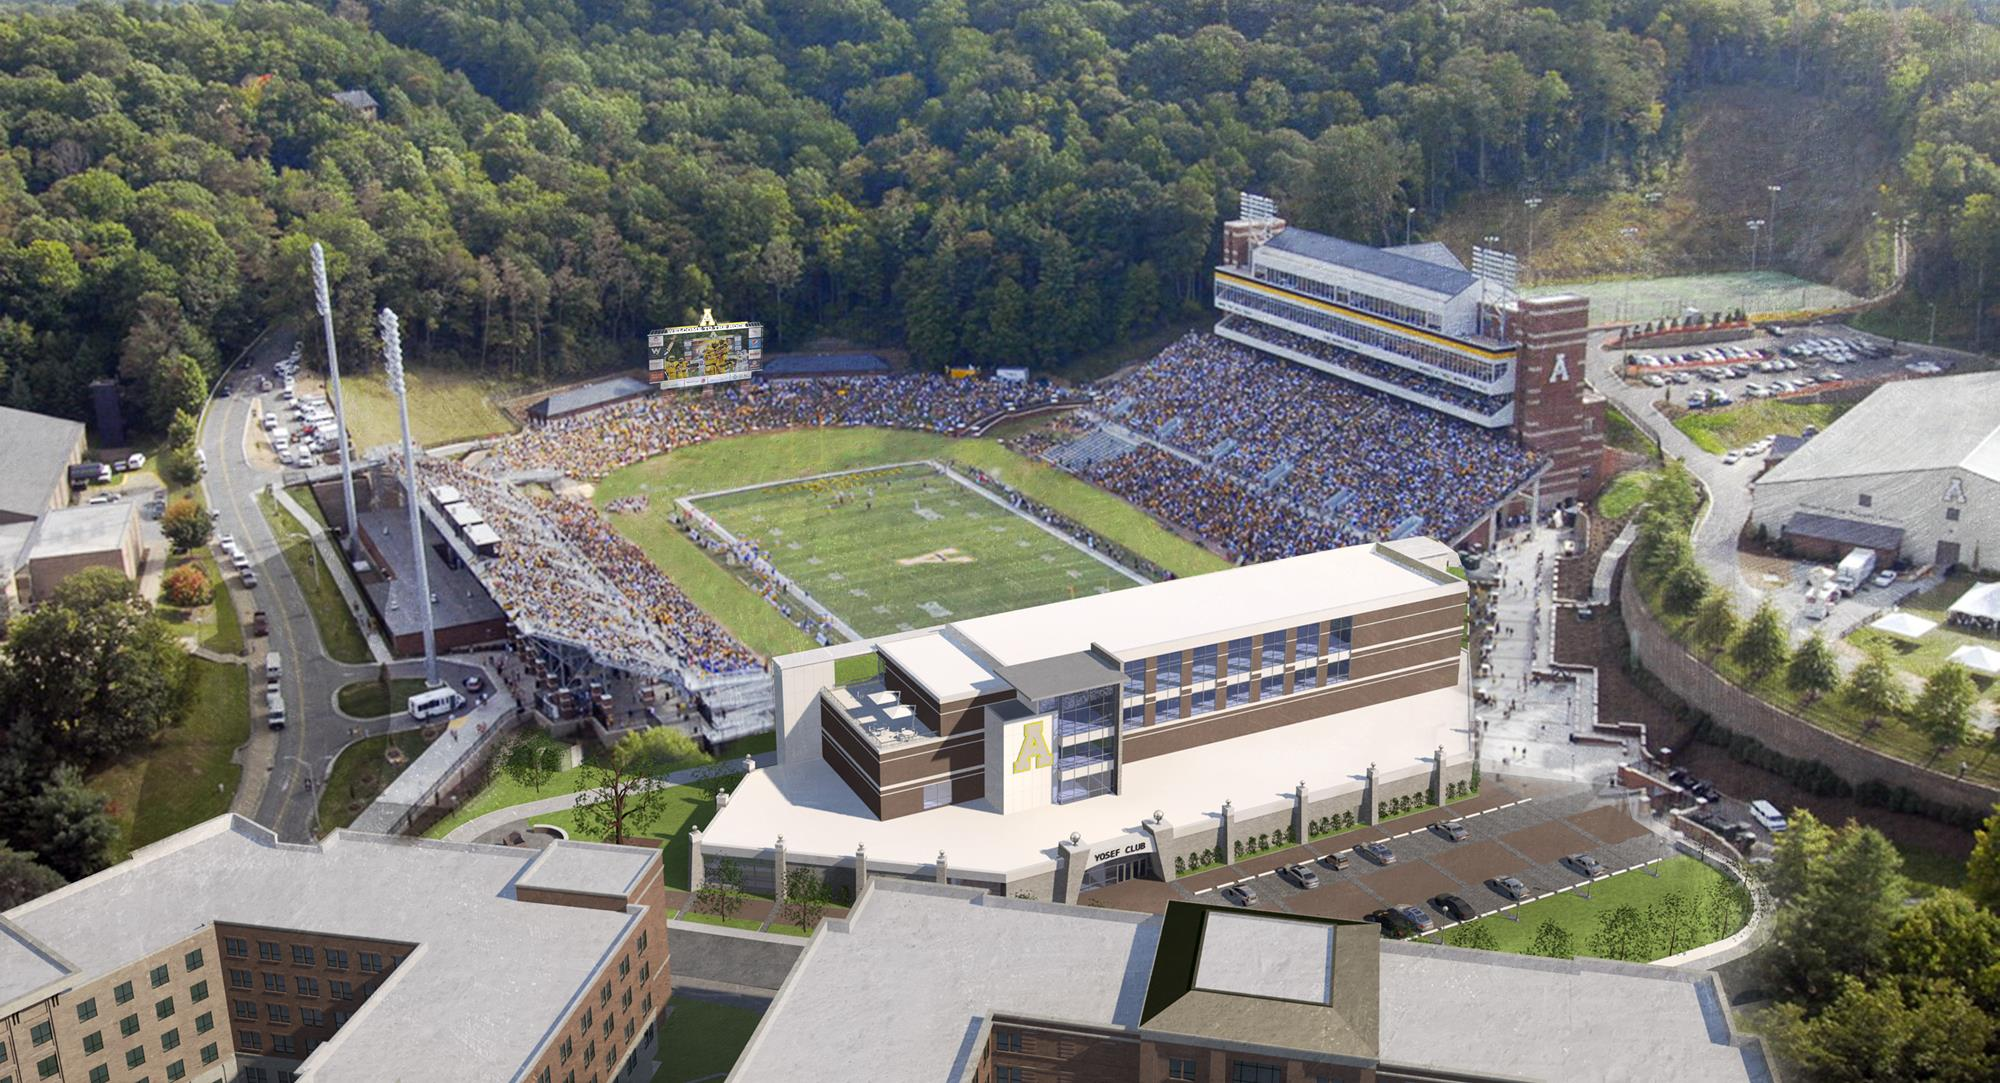 App State Athletics Facility Projects Approved by Board of ... on ohio state residence halls, app state sororities, app state cafeteria, app state bookstore, app state parking, penn state residence halls, app state student life, app state university dorms, app state wrestling camp, boise state residence halls, app state library, app state greek life, penn state pollock halls, app state football facilities, illinois state residence halls, nc state residence halls, app state human resources, app state history, app state dining, app state dorm room,